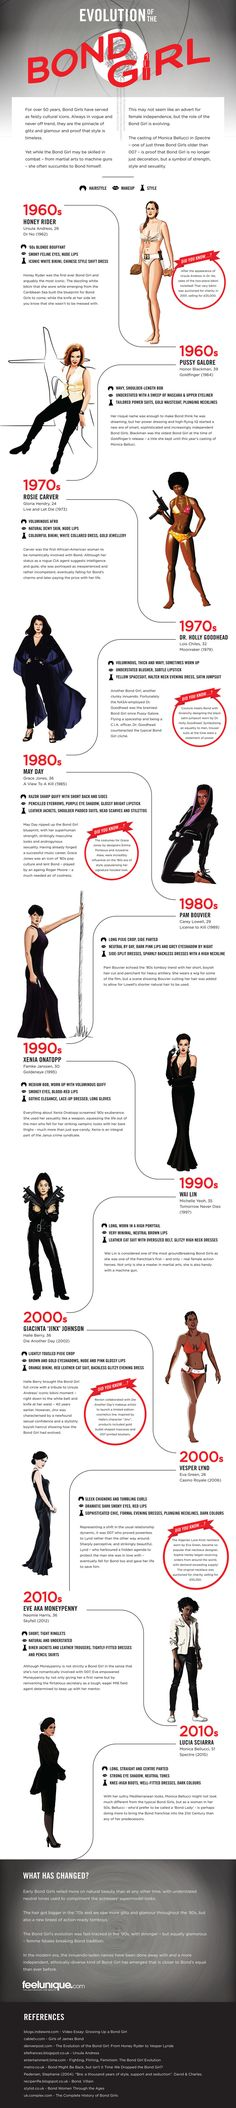 See The Evolution Of The Bond Girl In One Awesome Infographic James Bond Party, James Bond Theme, James Bond Movie Posters, James Bond Movies, Hollywood Actor, Golden Age Of Hollywood, 007 Theme, James Bond Women, Spy Girl